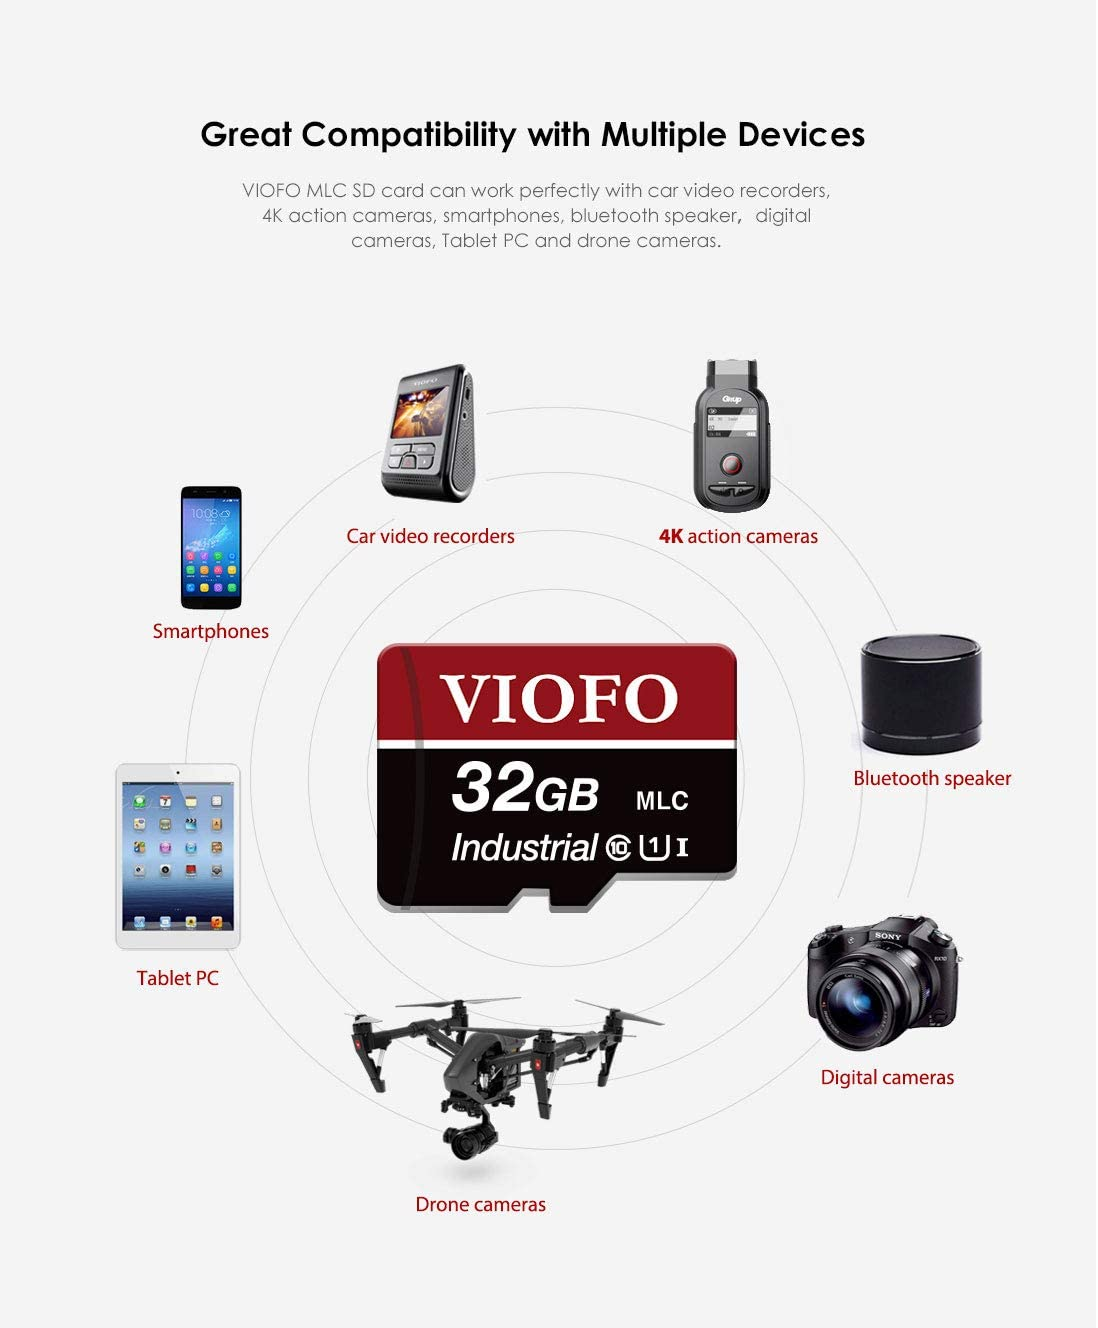 VIOFO 32GB High Speed MLC Memory Card with Adapter Support Ultra HD 4K Video Shooting